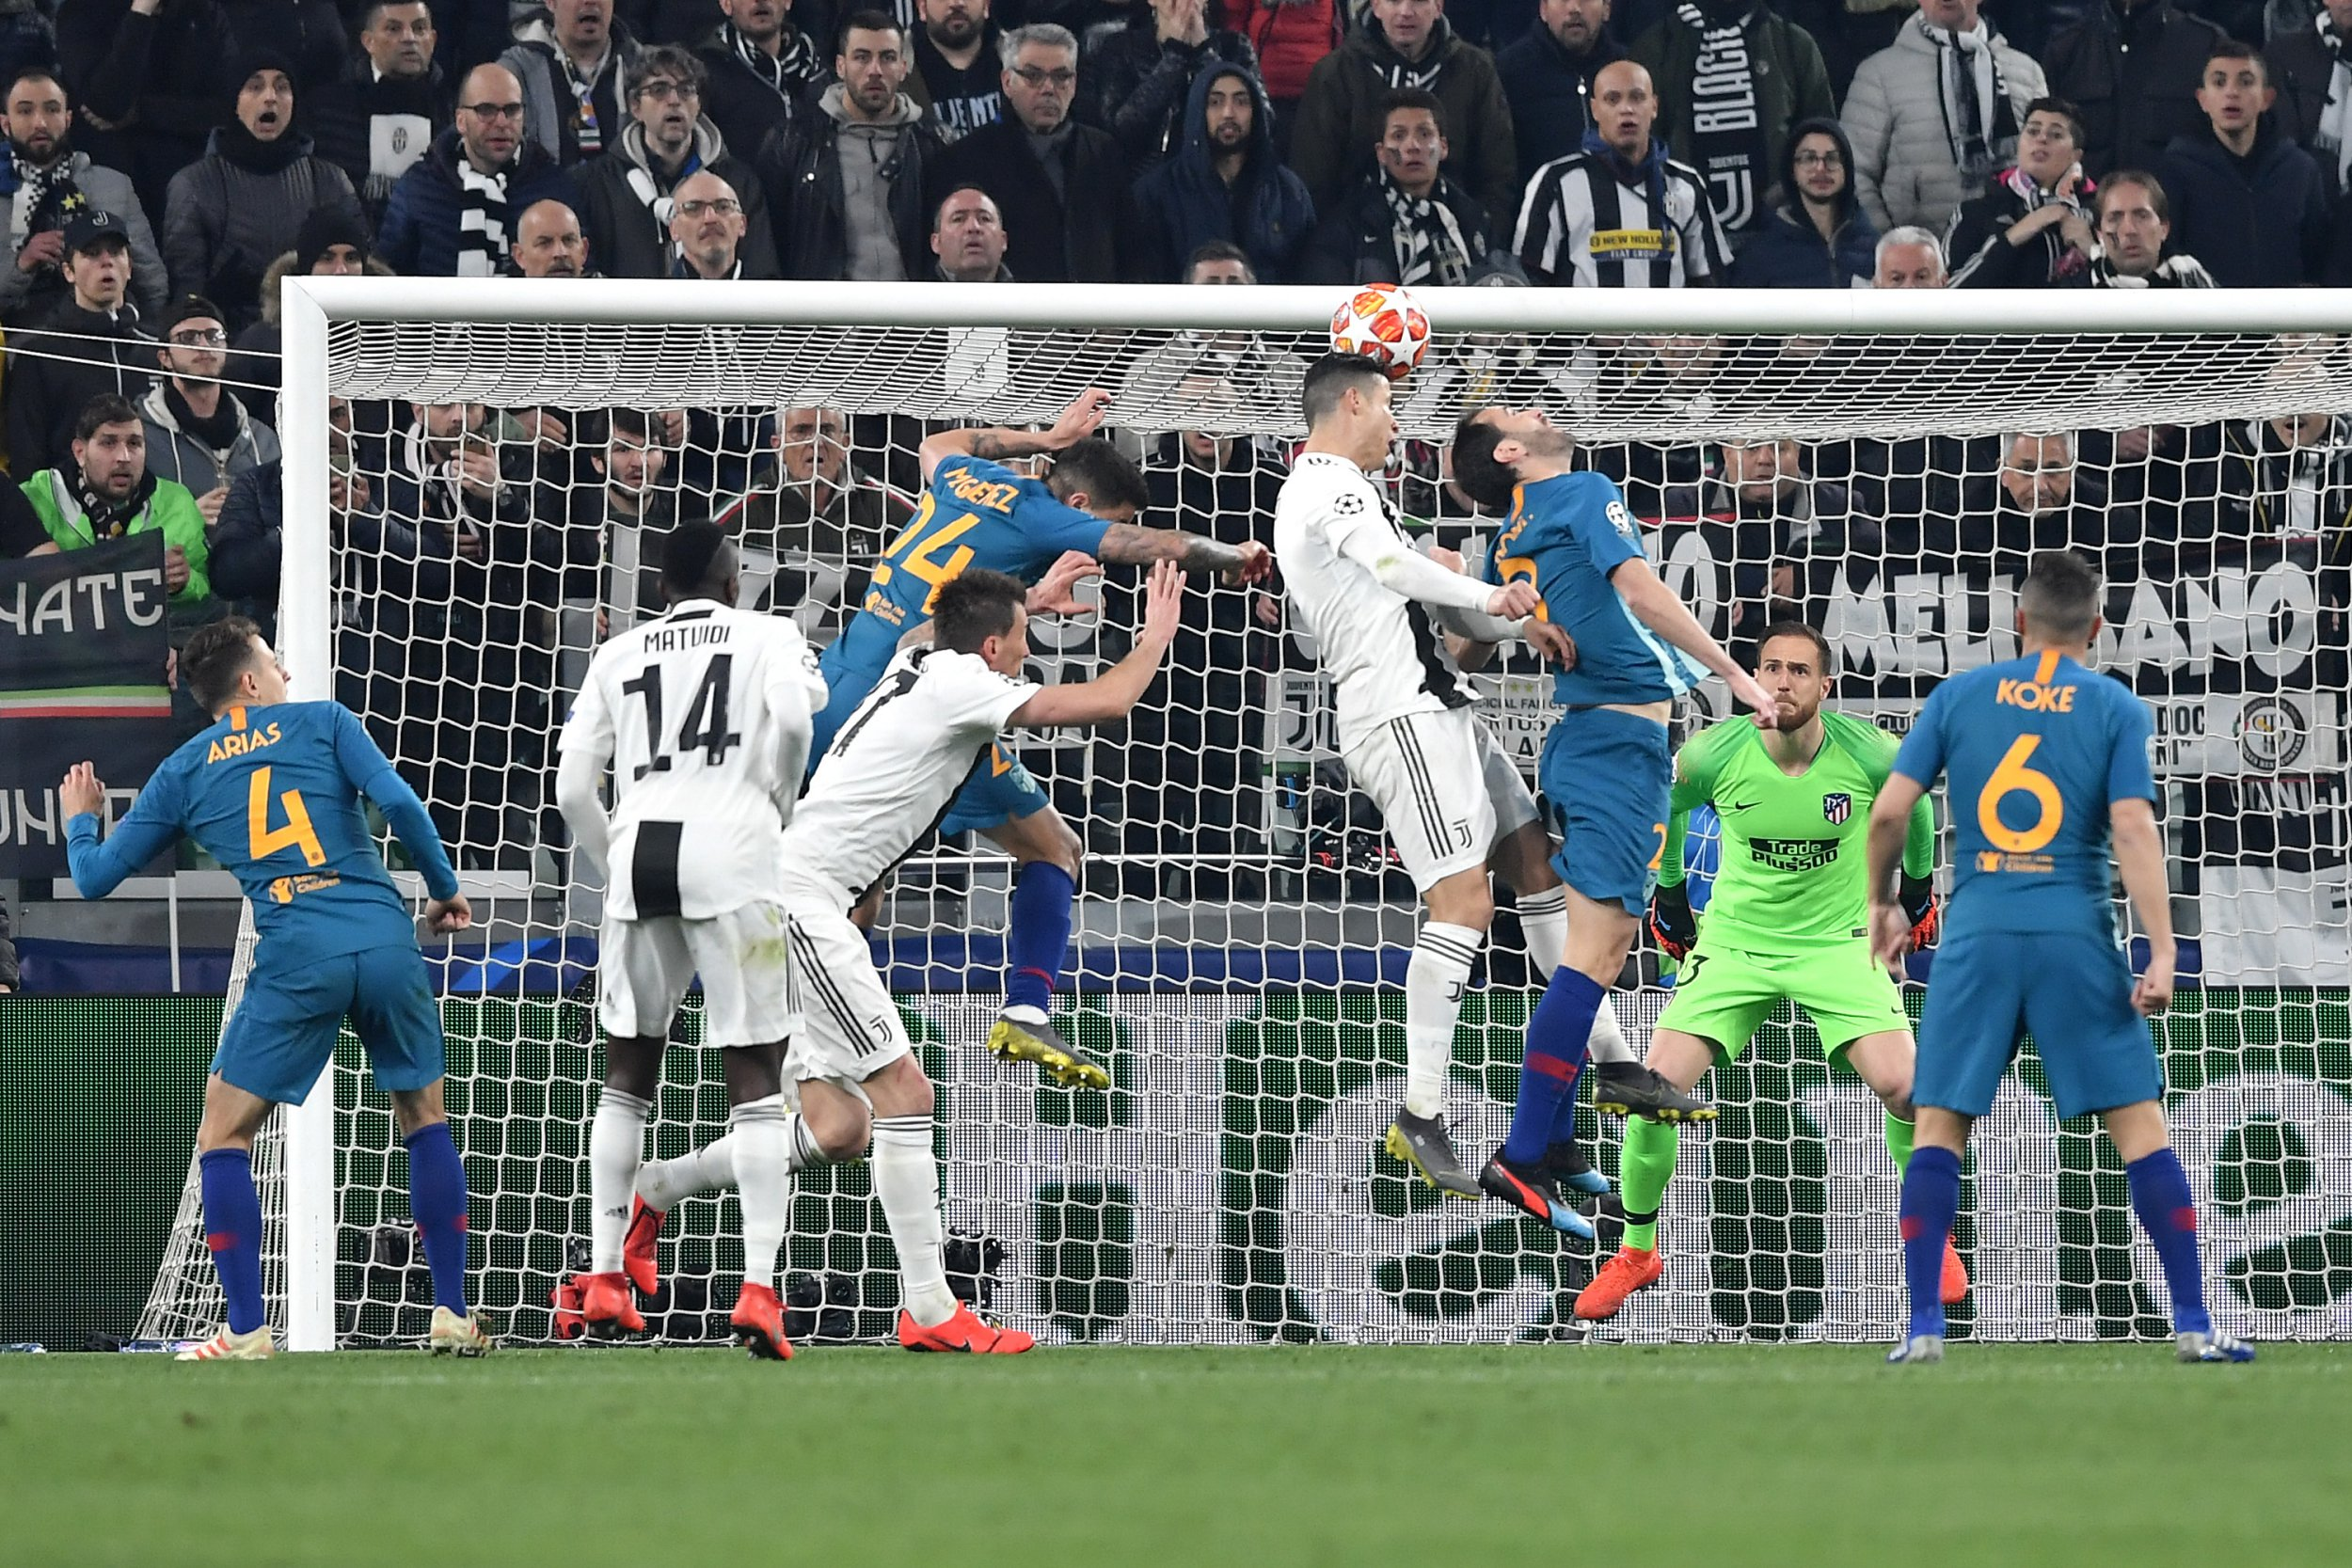 SIPA USA via PA Images Cristiano Ronaldo of Juventus scores goal of 2-0 during the Uefa Champions League 2018/2019 round of 16 second leg football match between Juventus and Atletico Madrid at Juventus stadium, Turin, March, 12, 2019 Foto Andrea Staccioli / Insidefoto/Sipa USA